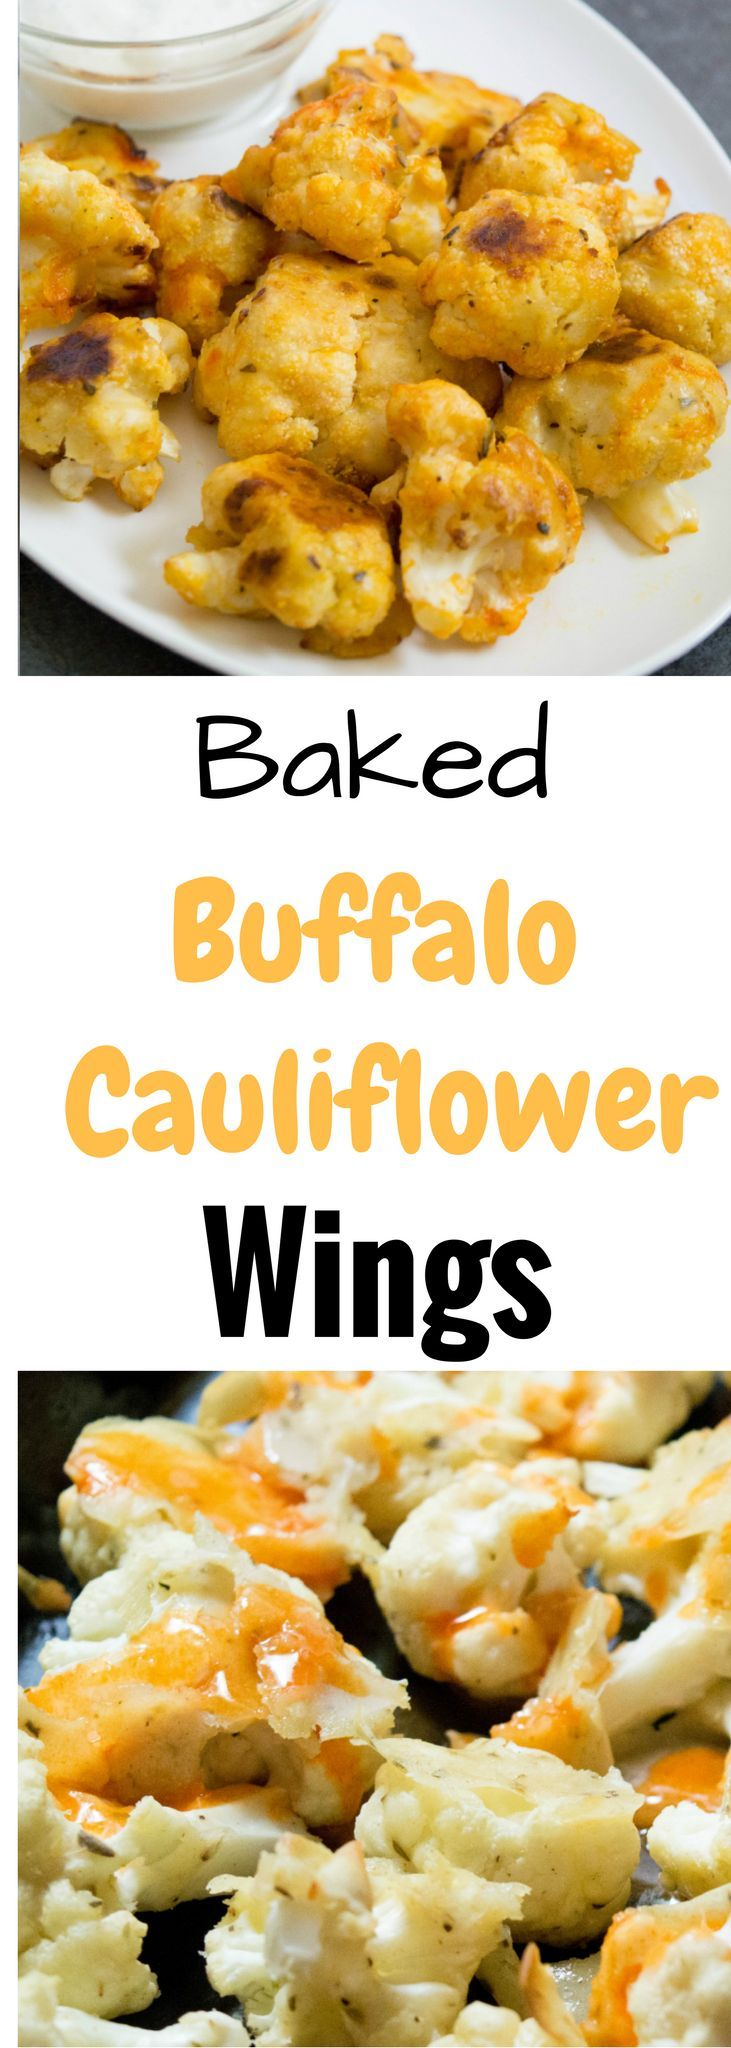 Buffalo Cauliflower Wings Recipe Easy to adjust to a low-protein diet for those with pku with coconut milk instead of cow milk. #pku